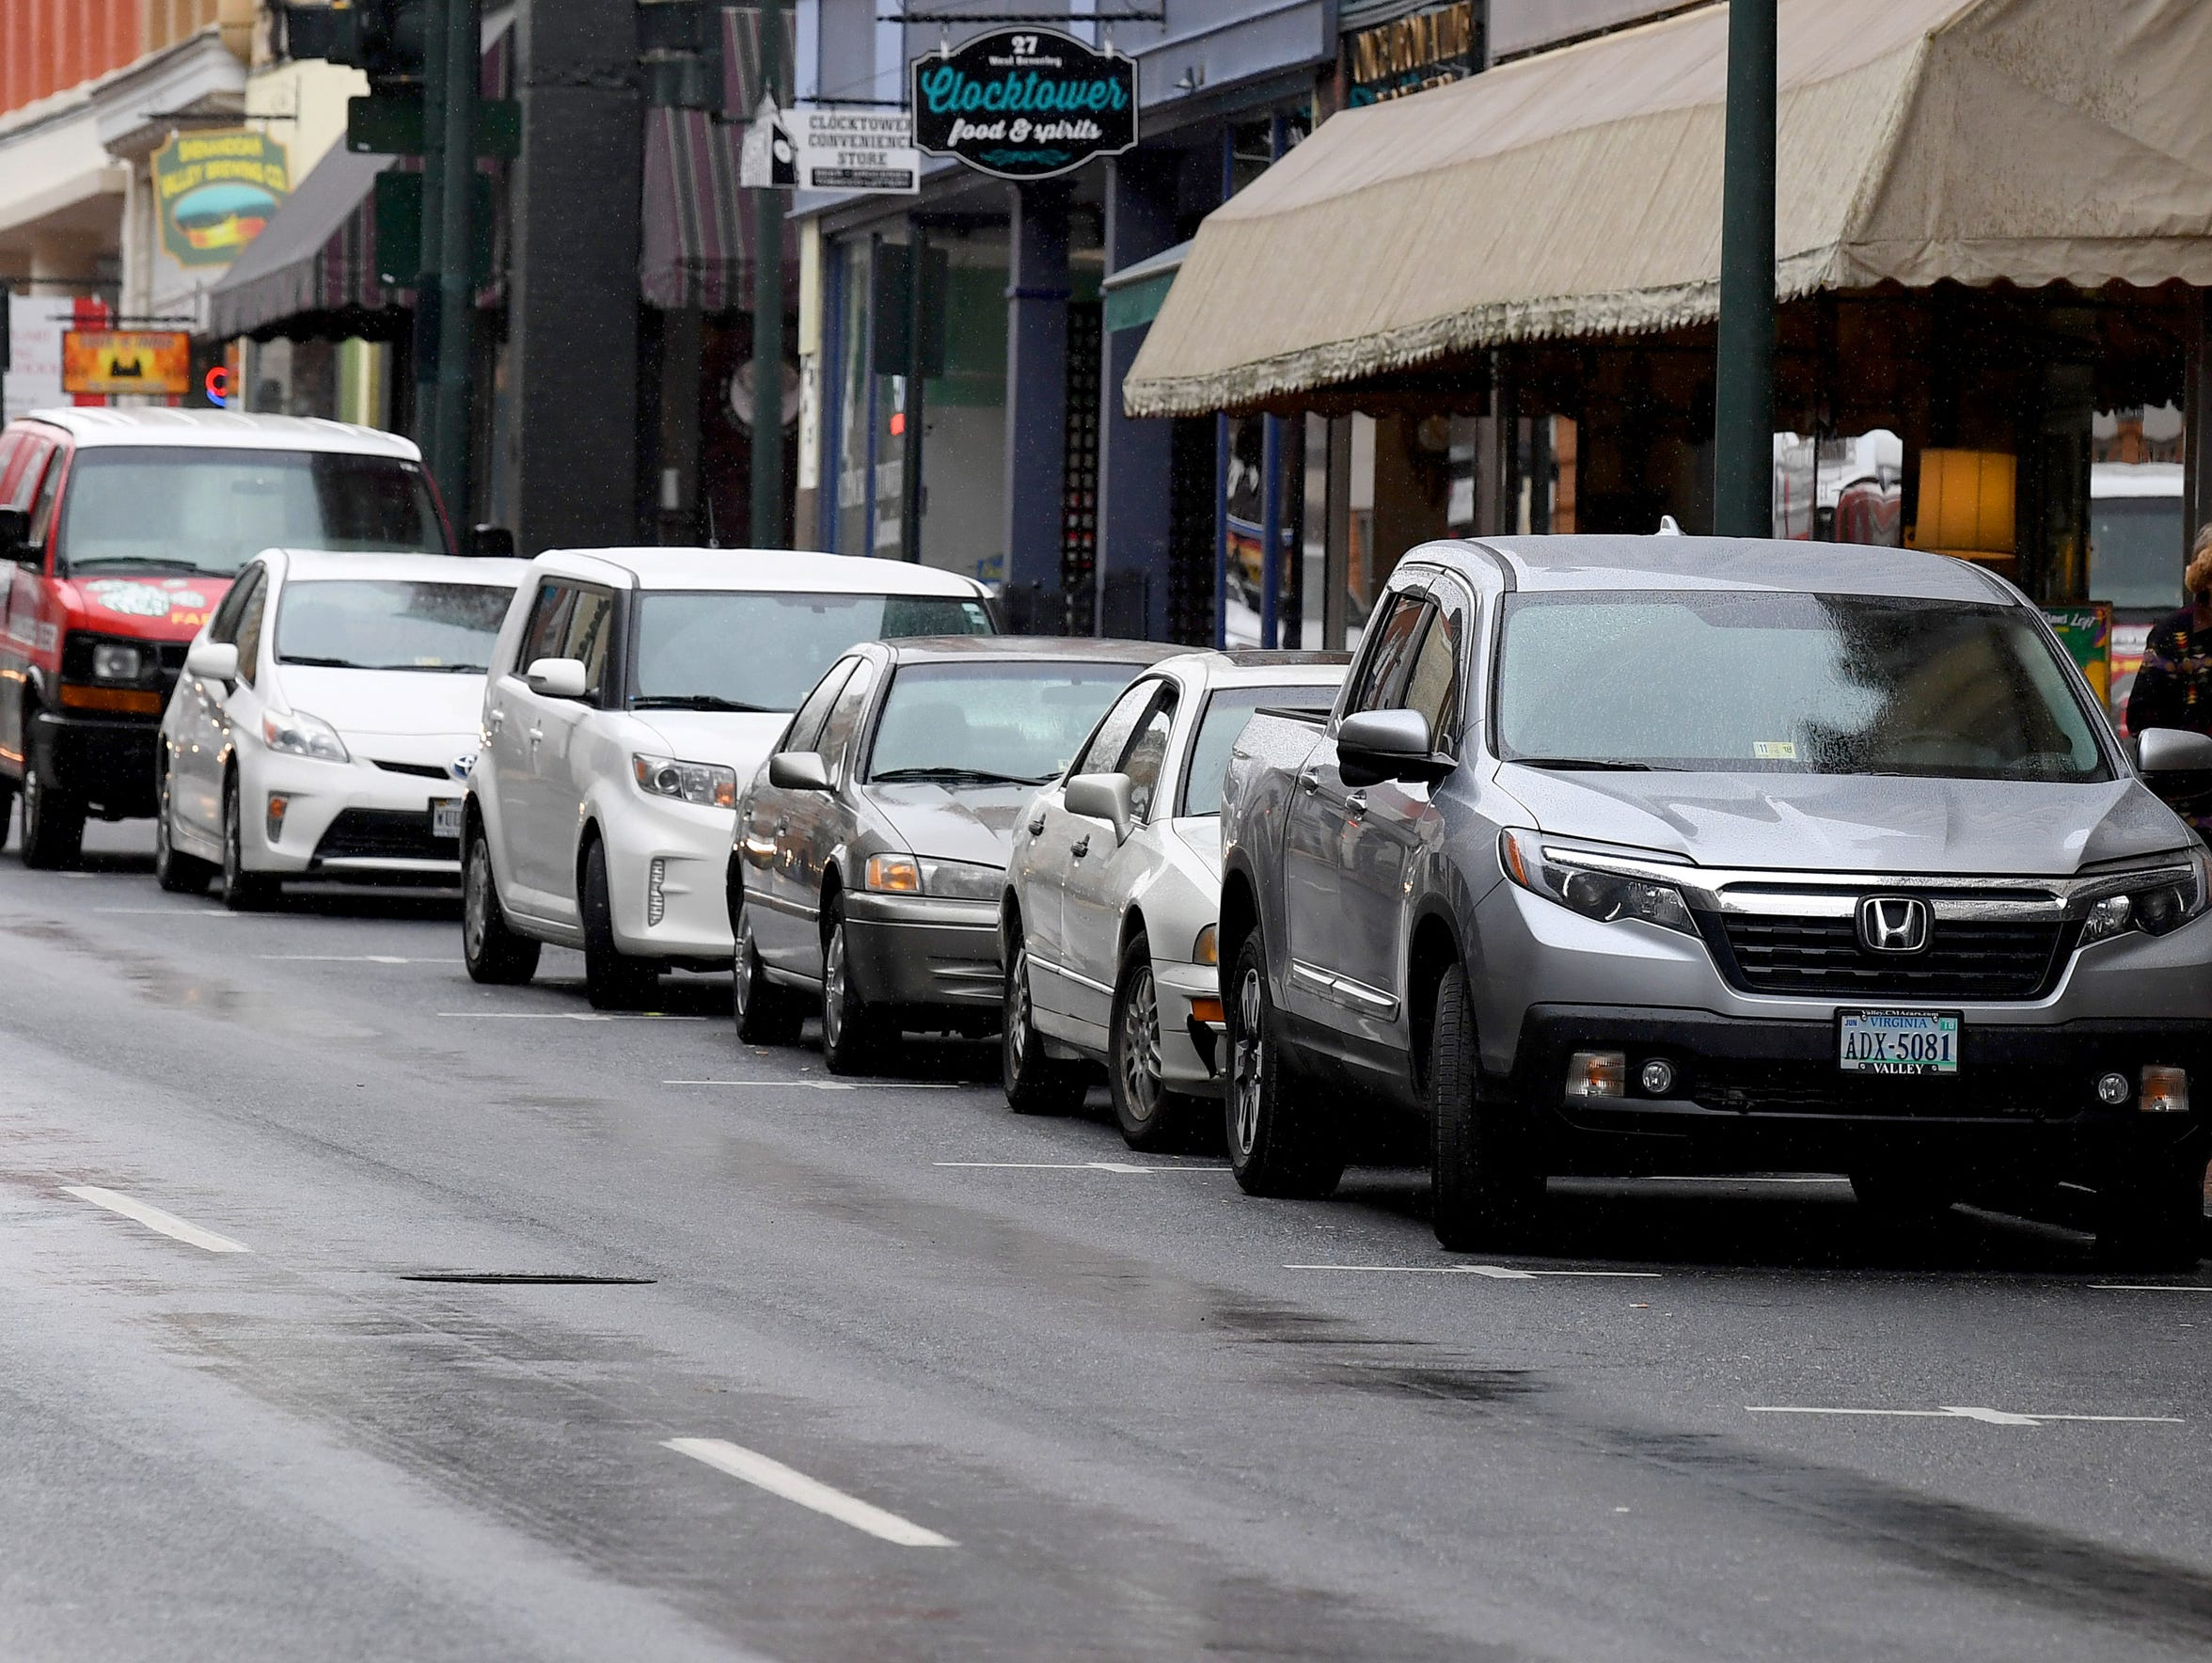 Cars parked along West Beverley Street in downtown